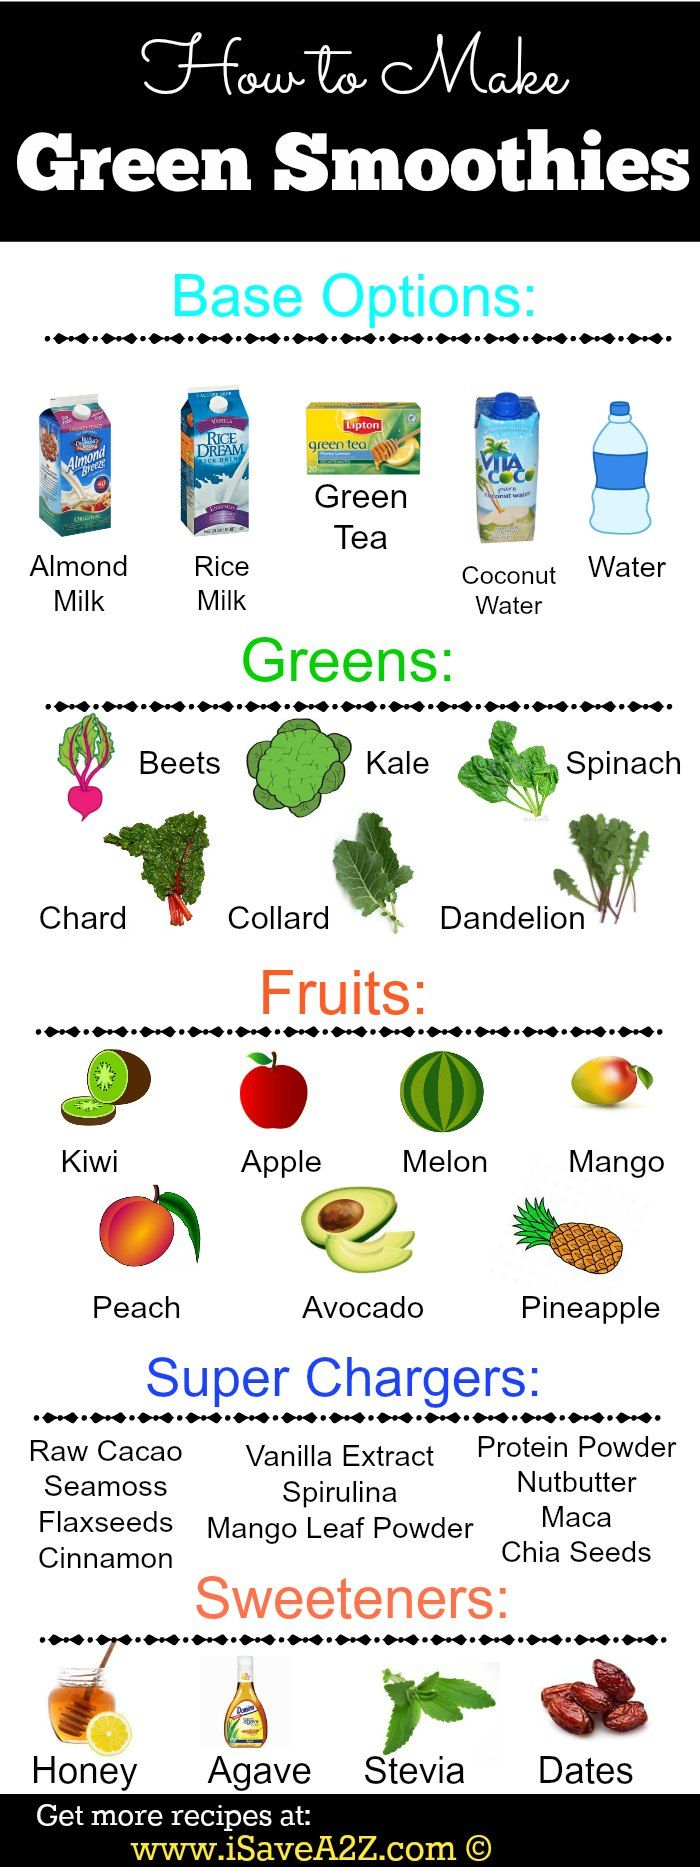 Green Smoothie Recipe combinations! I needed this!! My goal is to lose fat with…